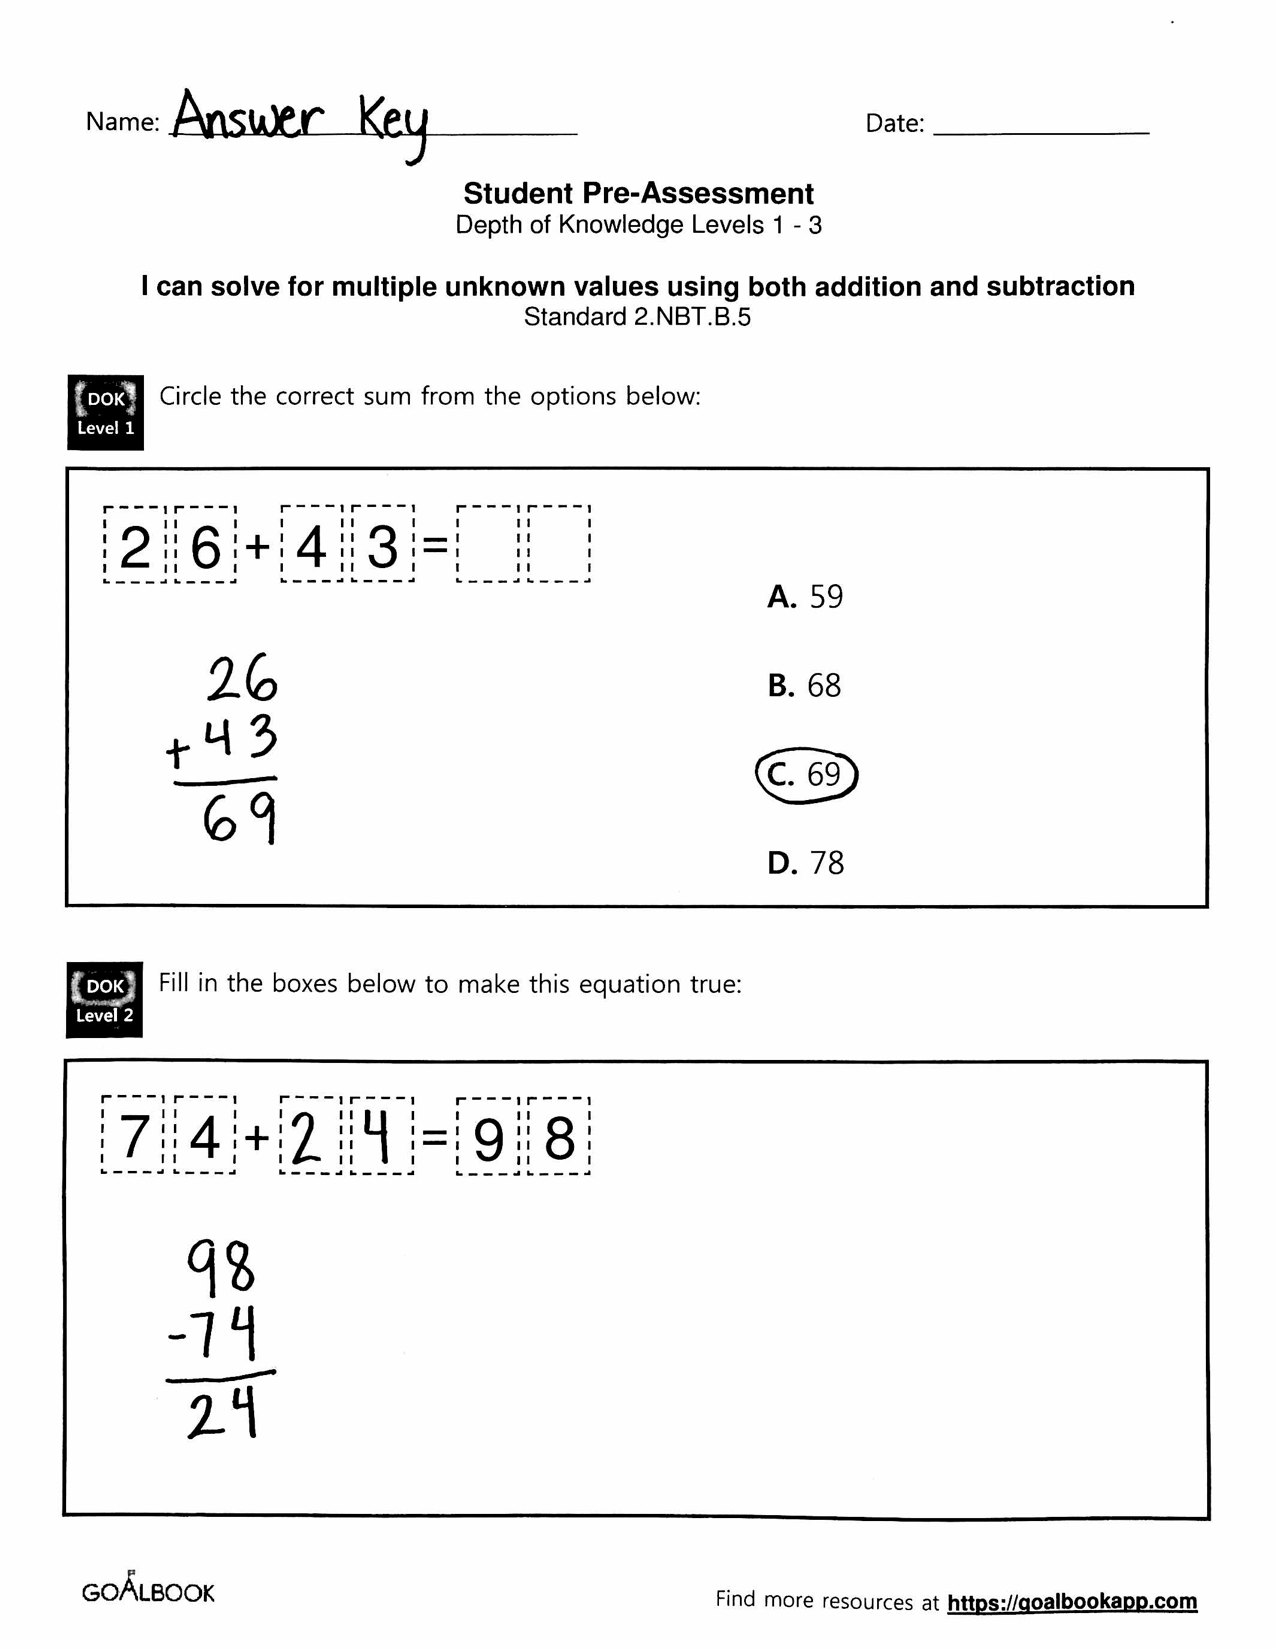 Subtraction Worksheet Within 100